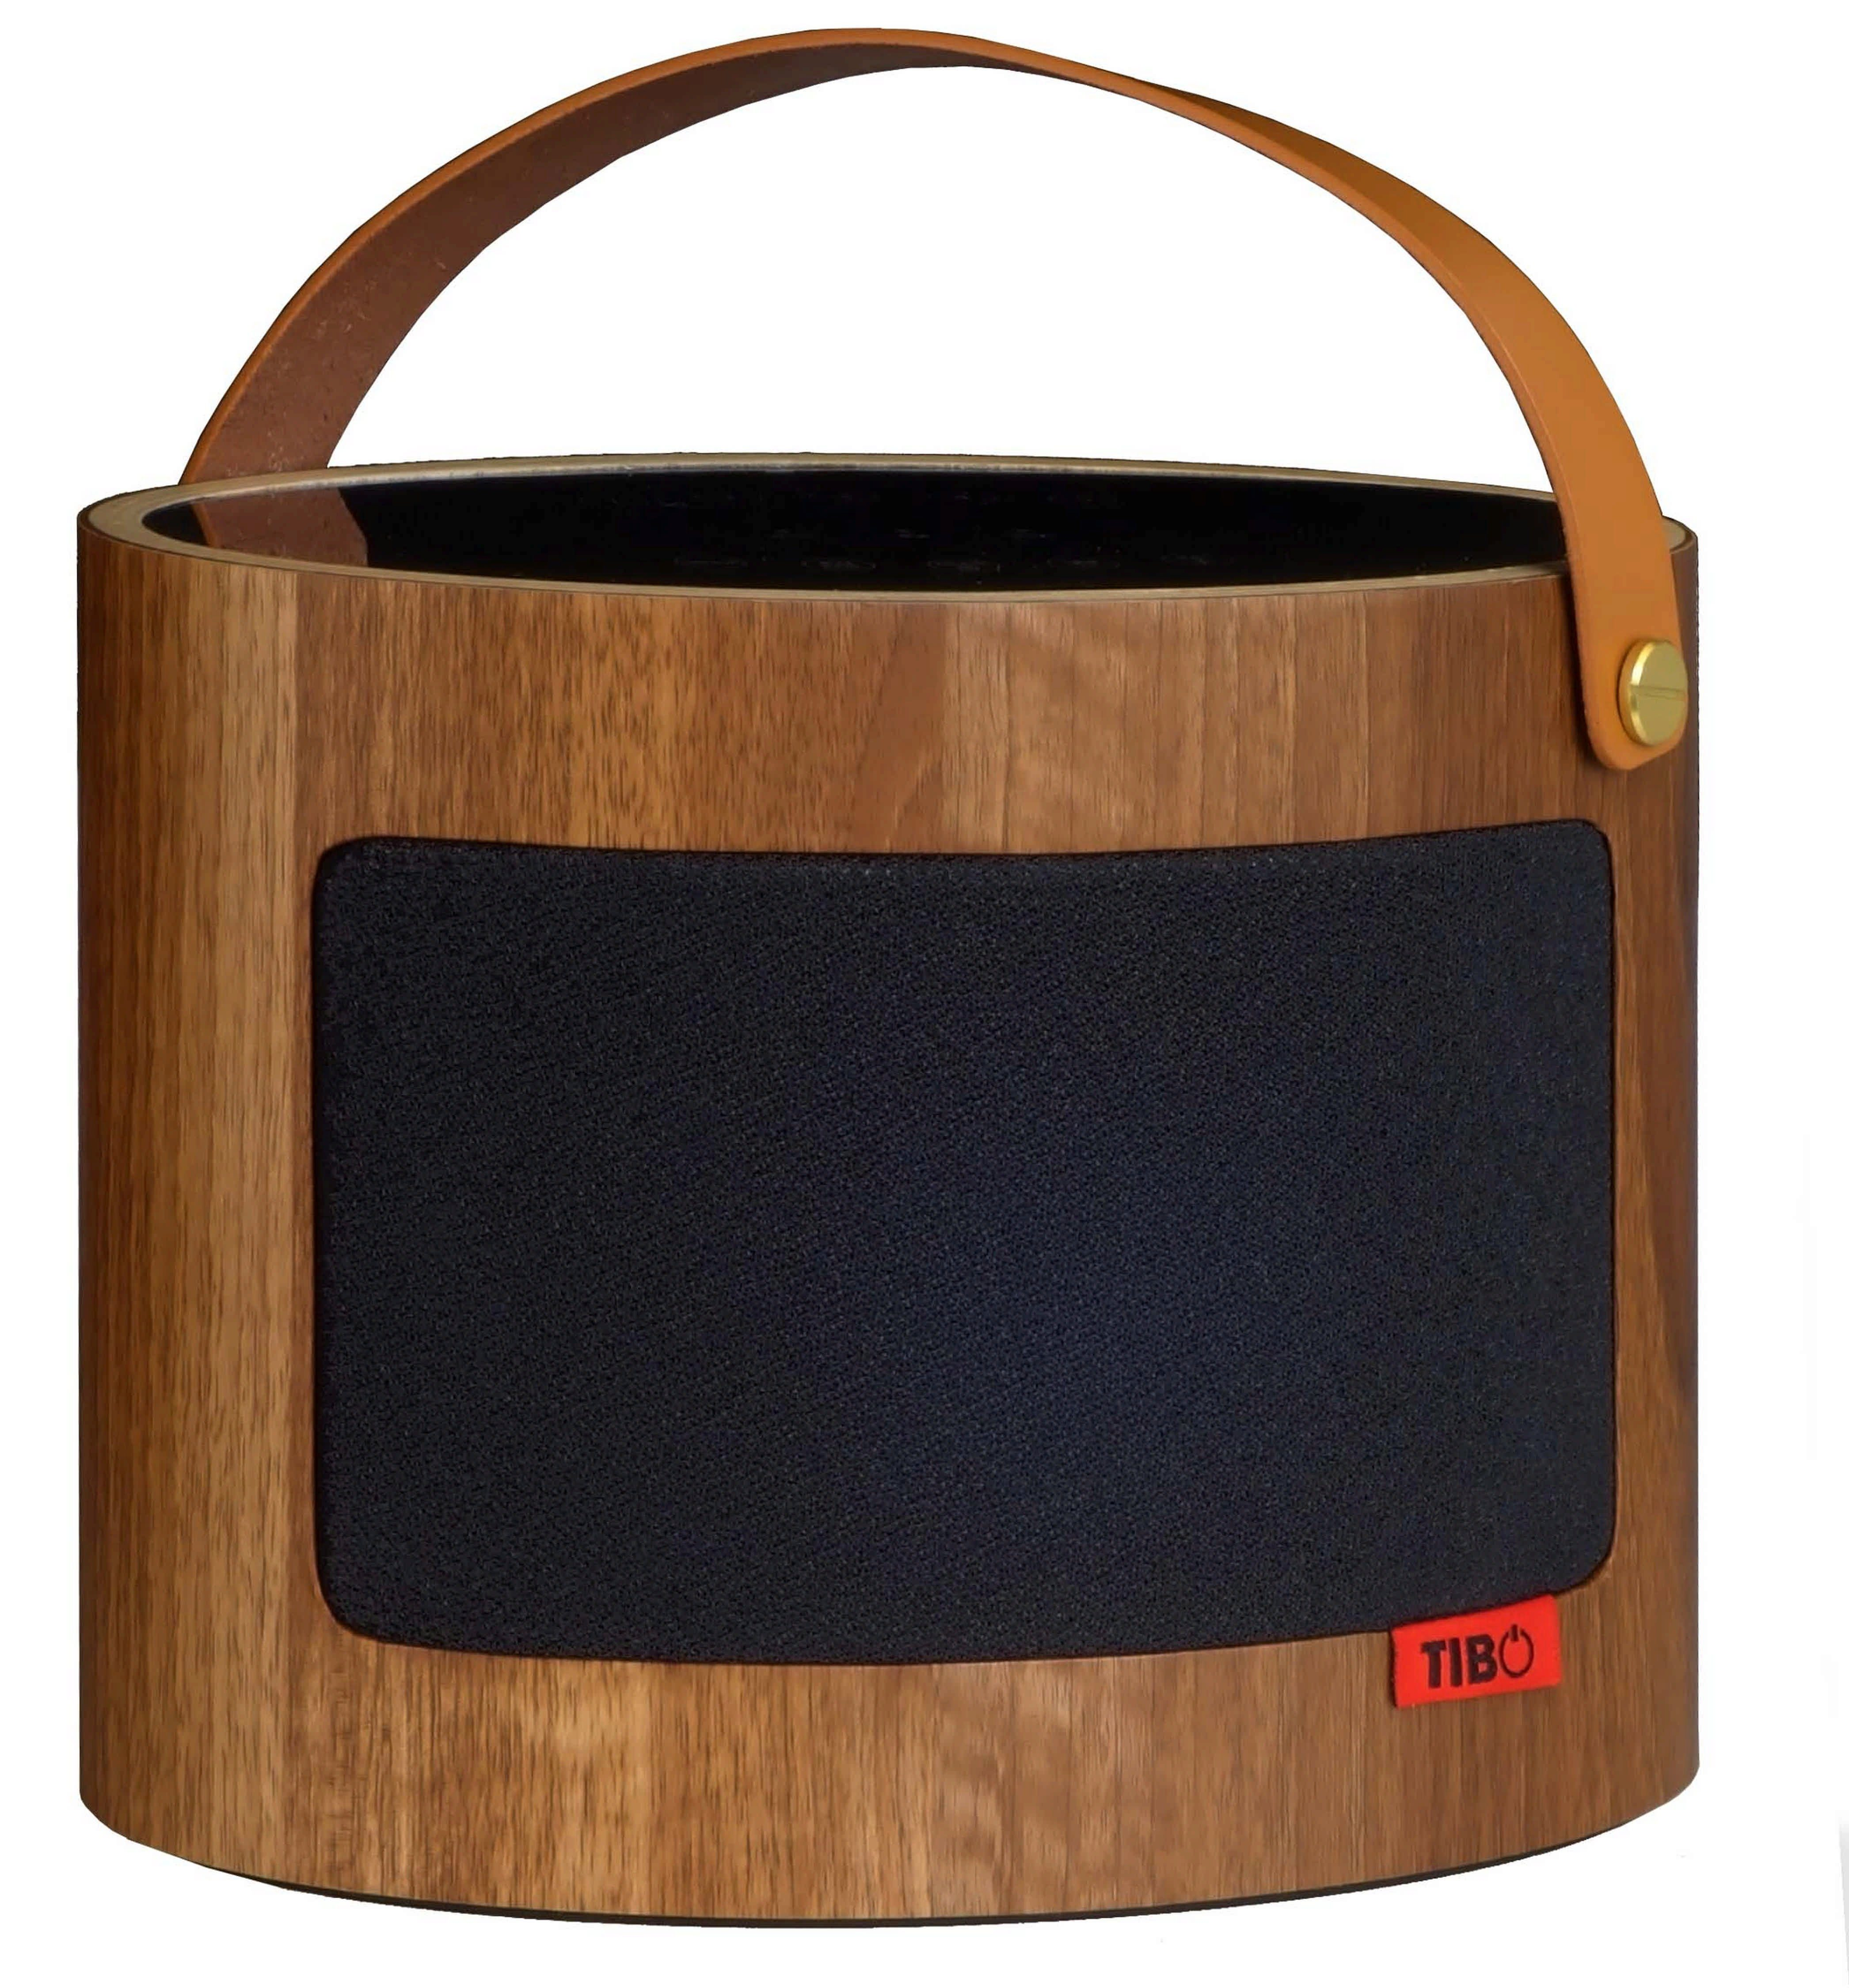 Tibo Tragbarer Hi-Res Bluetooth-, WLAN- & Multiroom Speaker »Vogue 3«